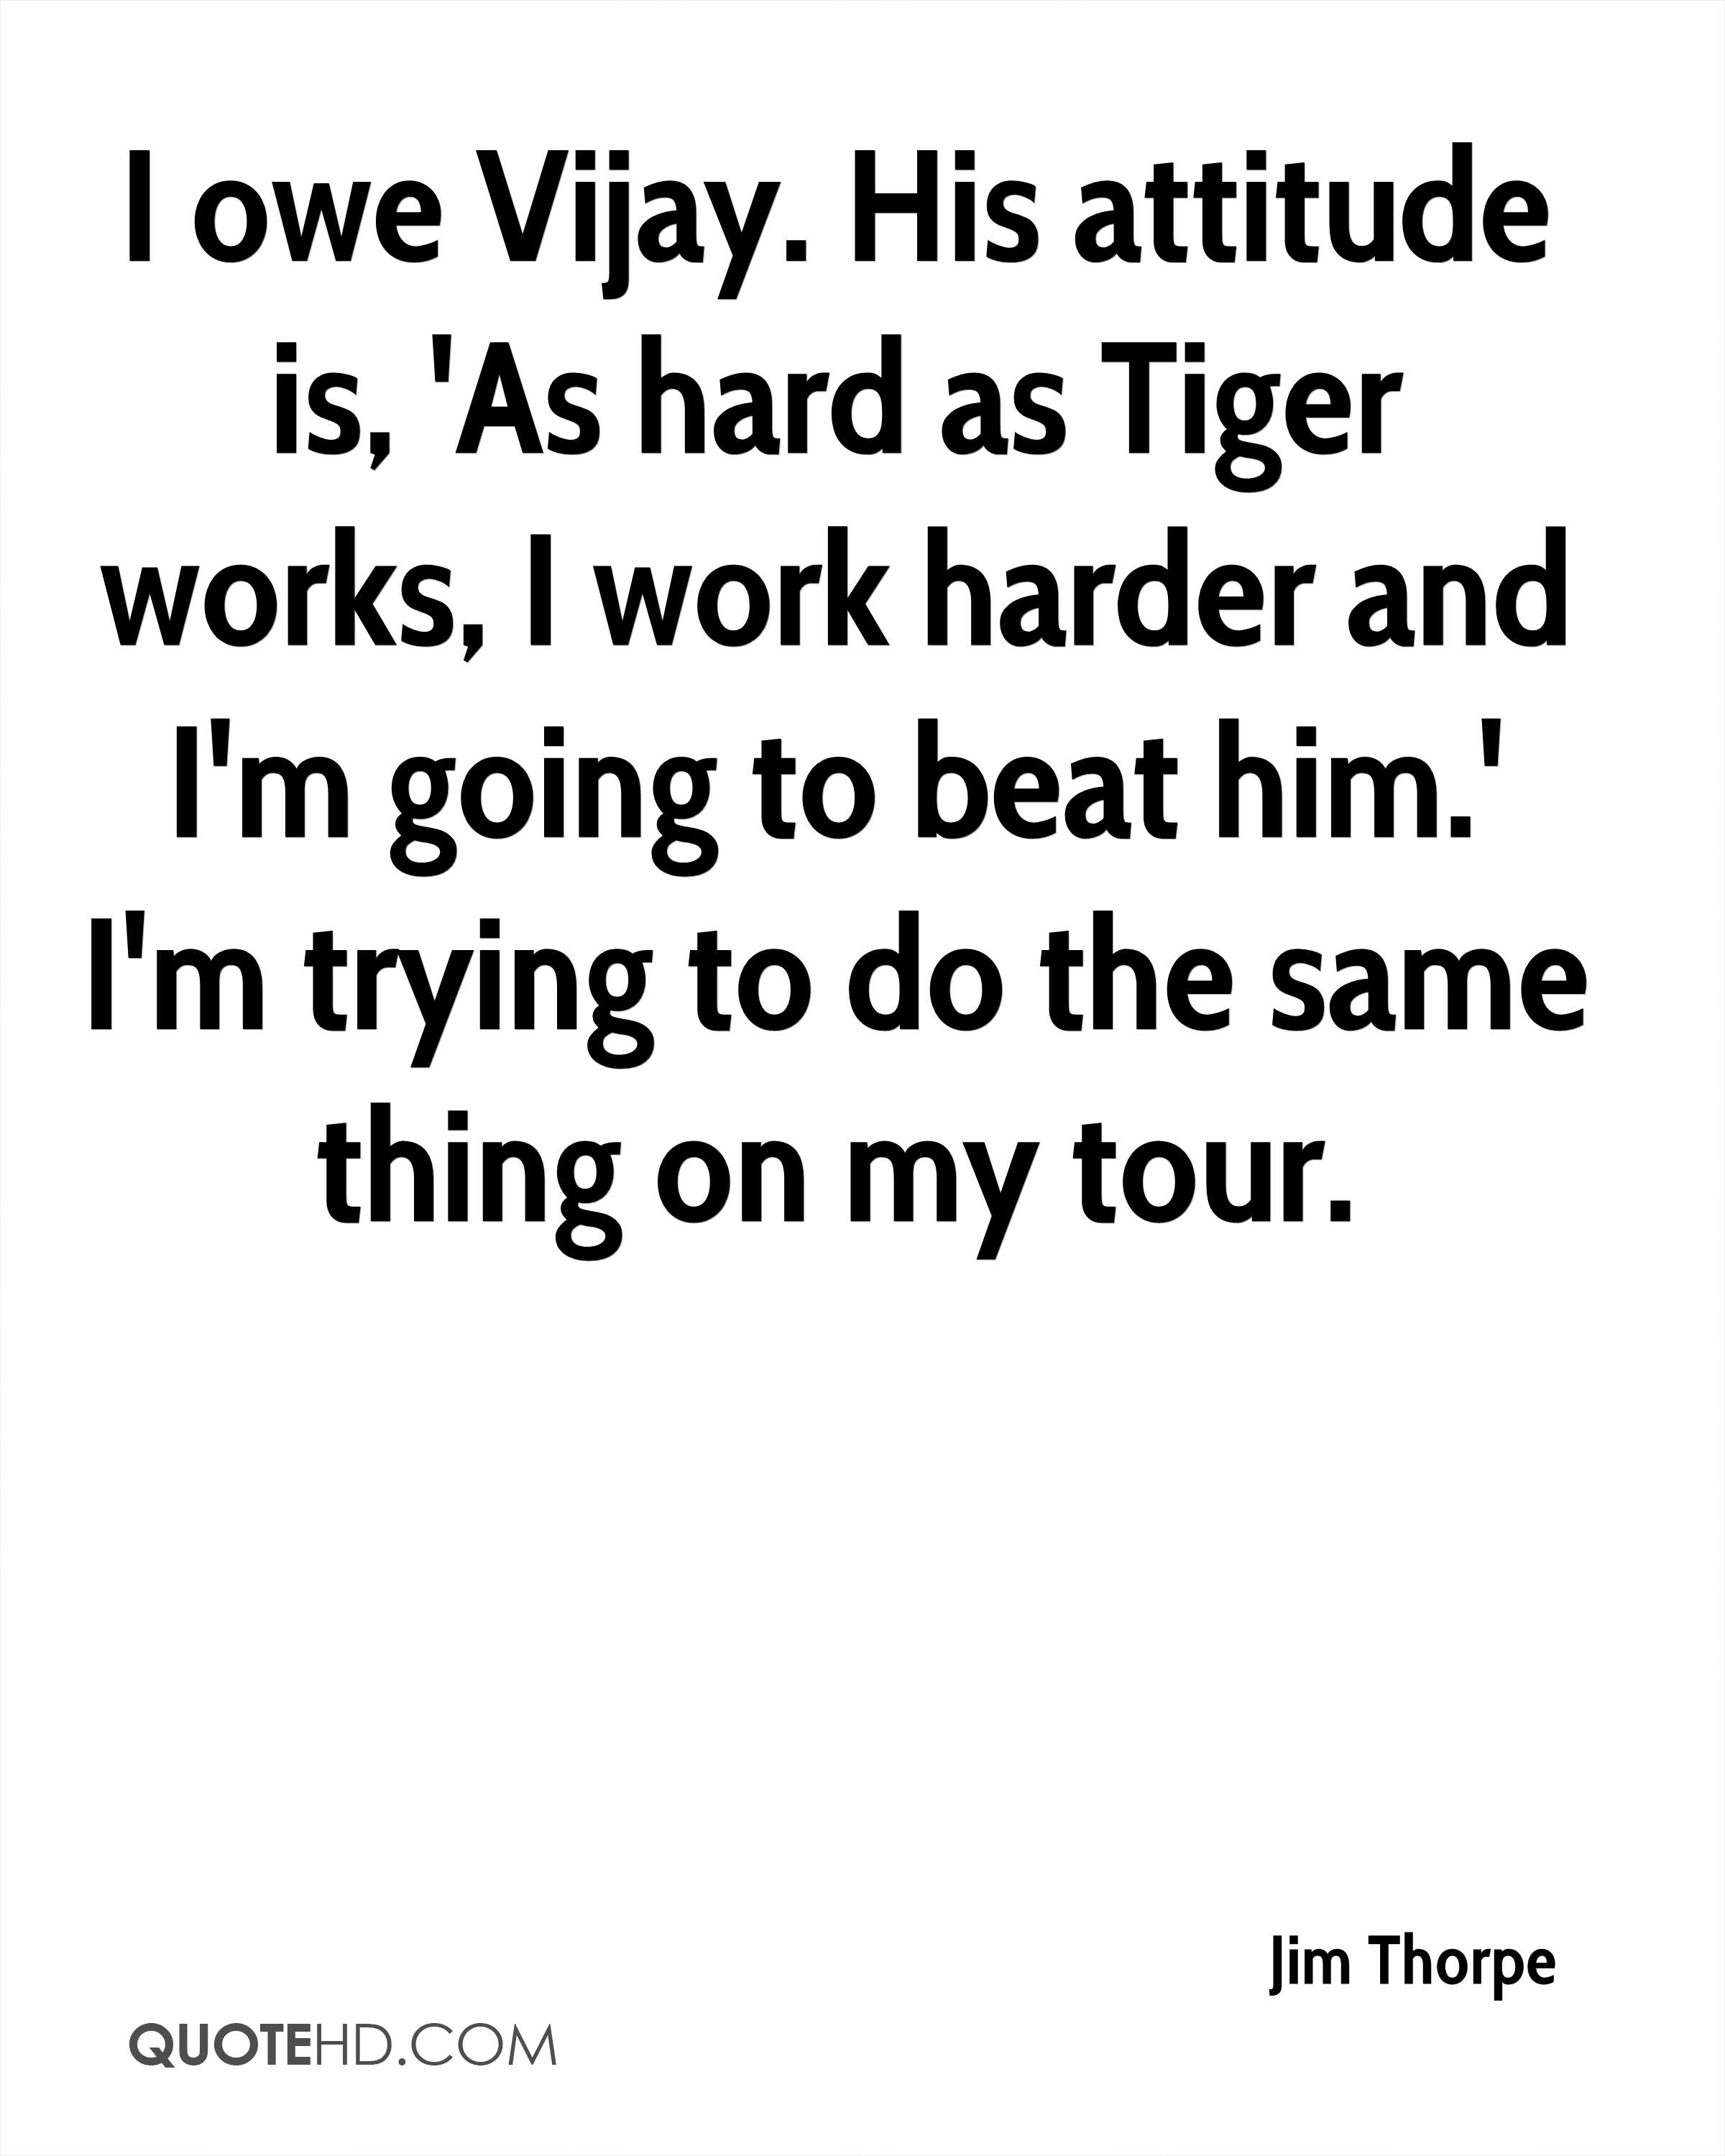 I owe Vijay. His attitude is, 'As hard as Tiger works, I work harder and I'm going to beat him.' I'm trying to do the same thing on my tour.